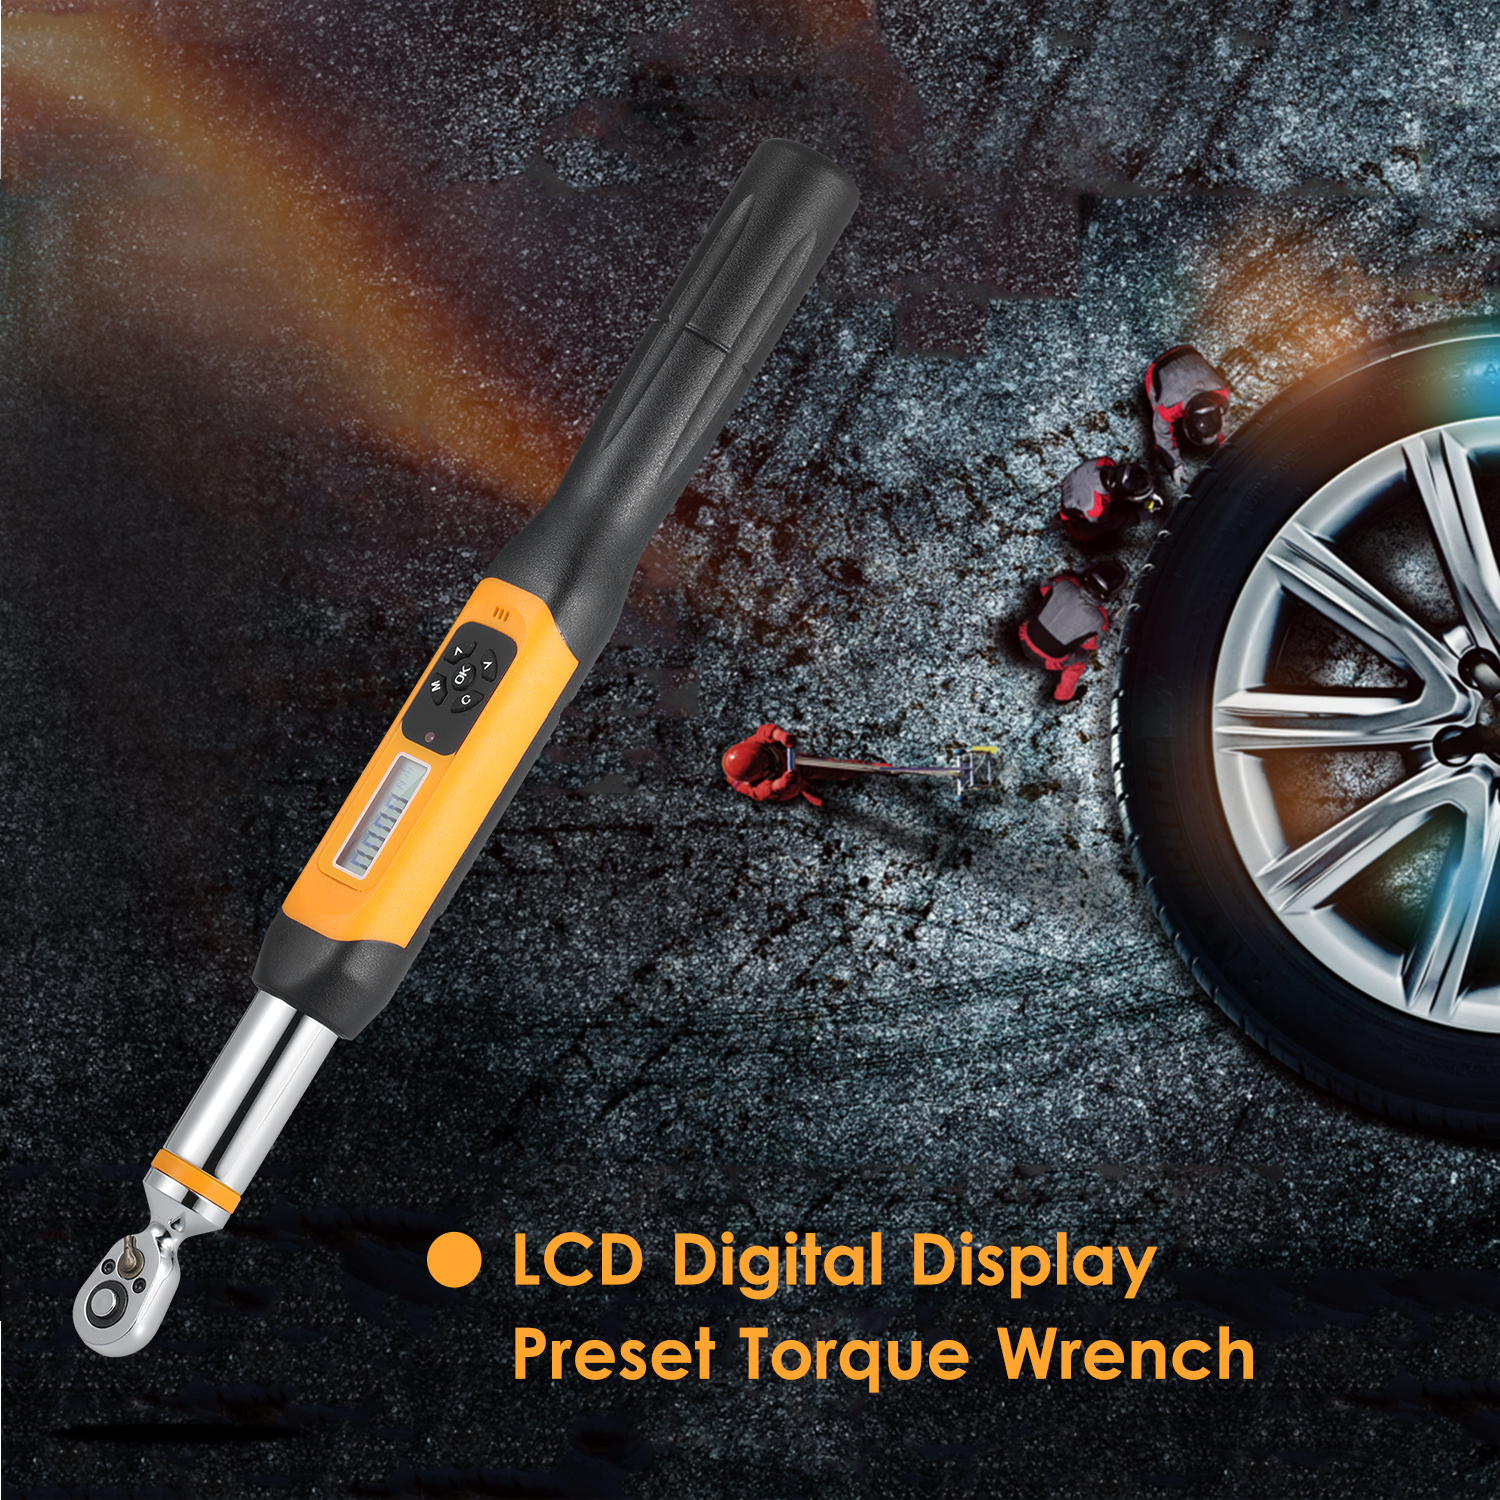 Preset Torque Wrench 10Nm Adjustable Torque 1.4-inch LCD Digital Display 100 Groups Data Storage Peak & Real Time Dual Modes